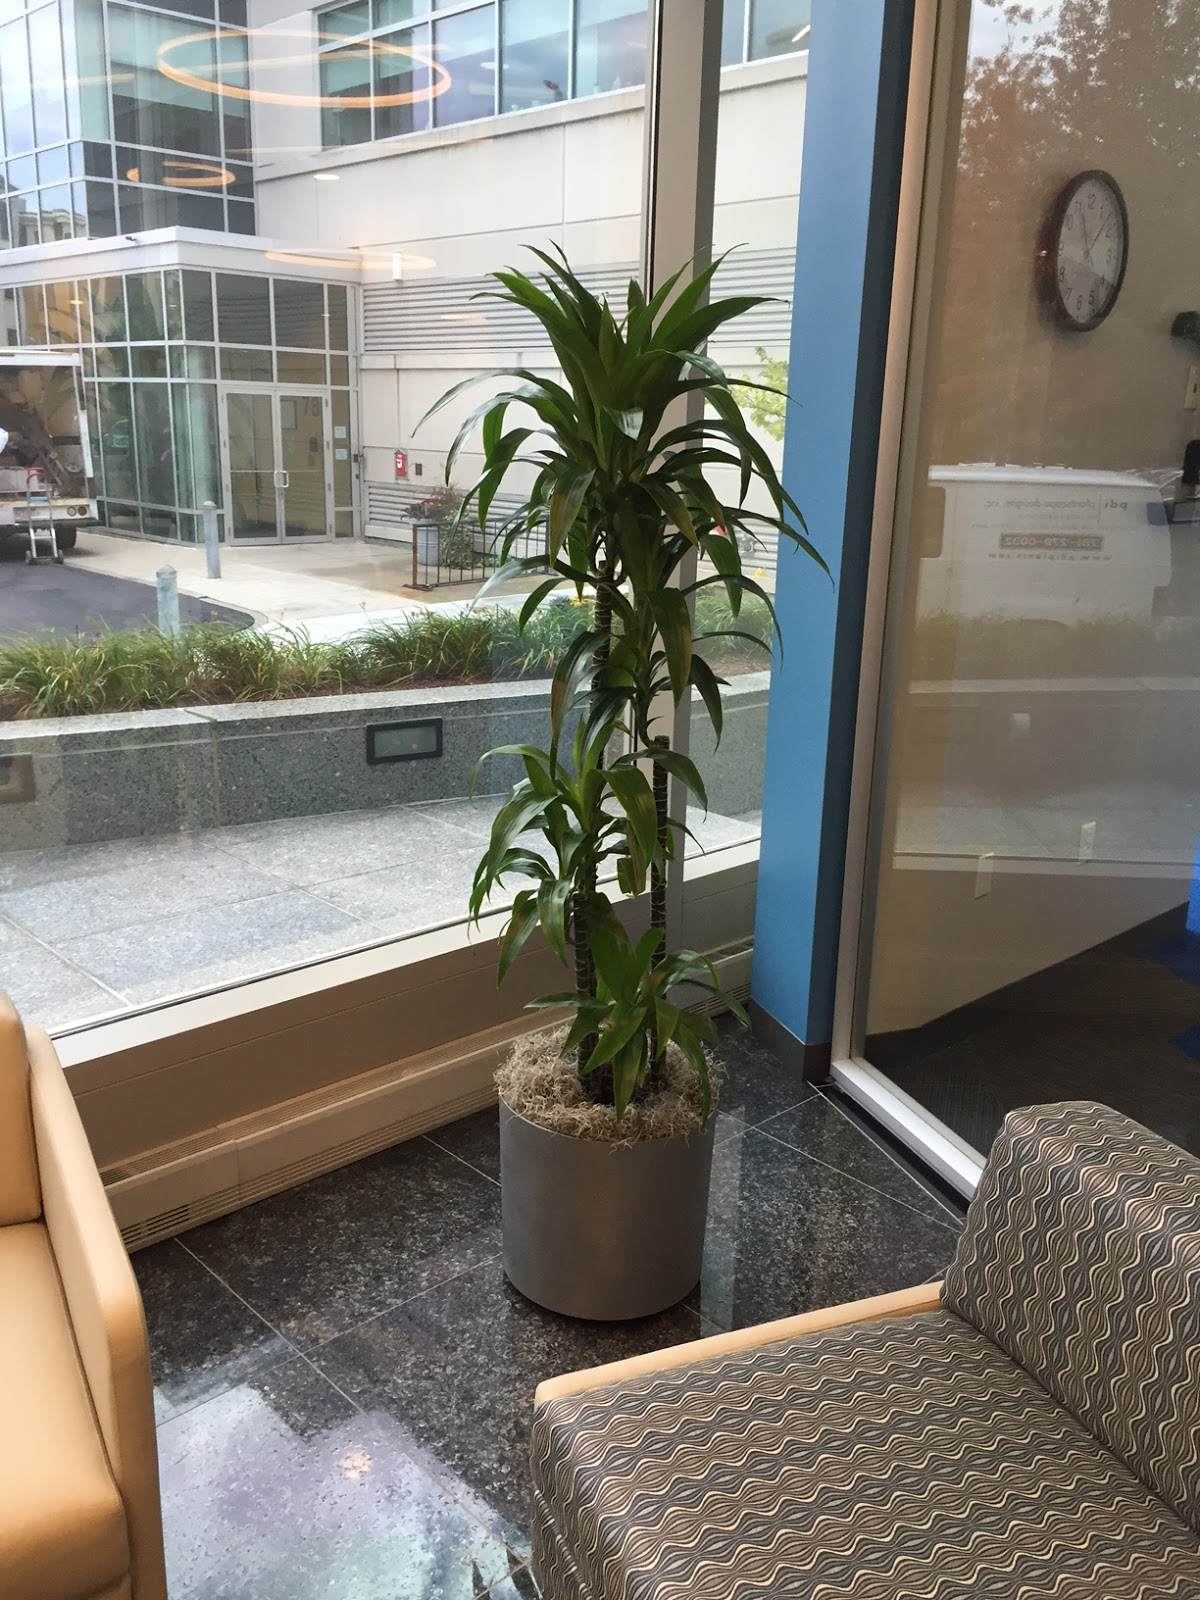 Indoor Office Plants Can Be Positioned Outside Glass Walled Conference Room  And Still Be Viewed And Enjoyed By Those Within The Board Room.